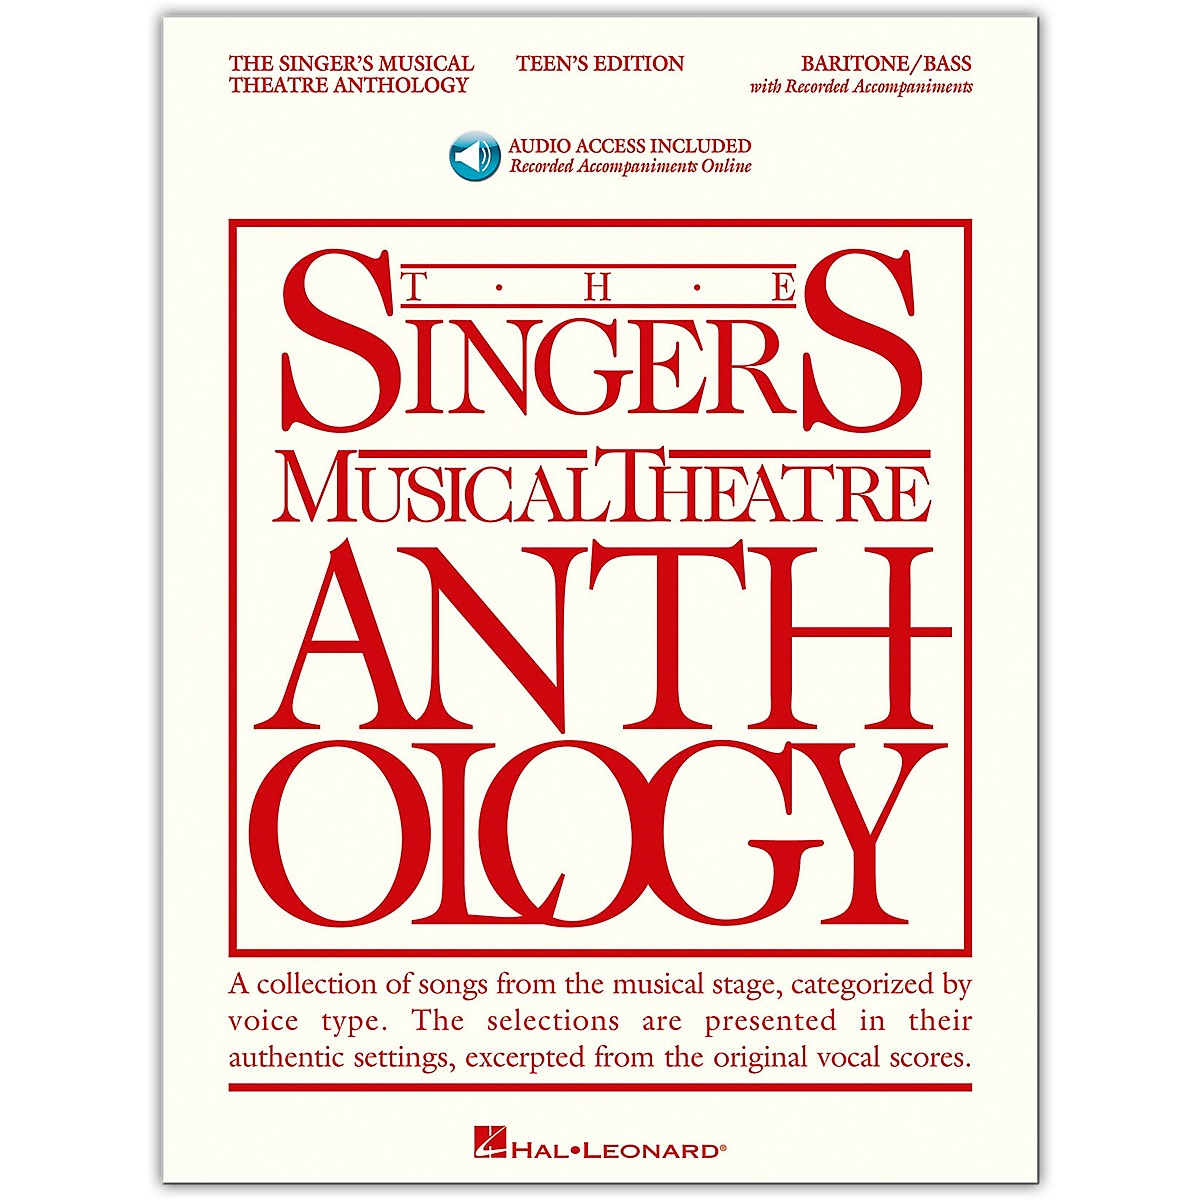 Hal Leonard Singer's Musical Theatre Anthology Teen's Edition Baritone/Bass Book/Online Audio